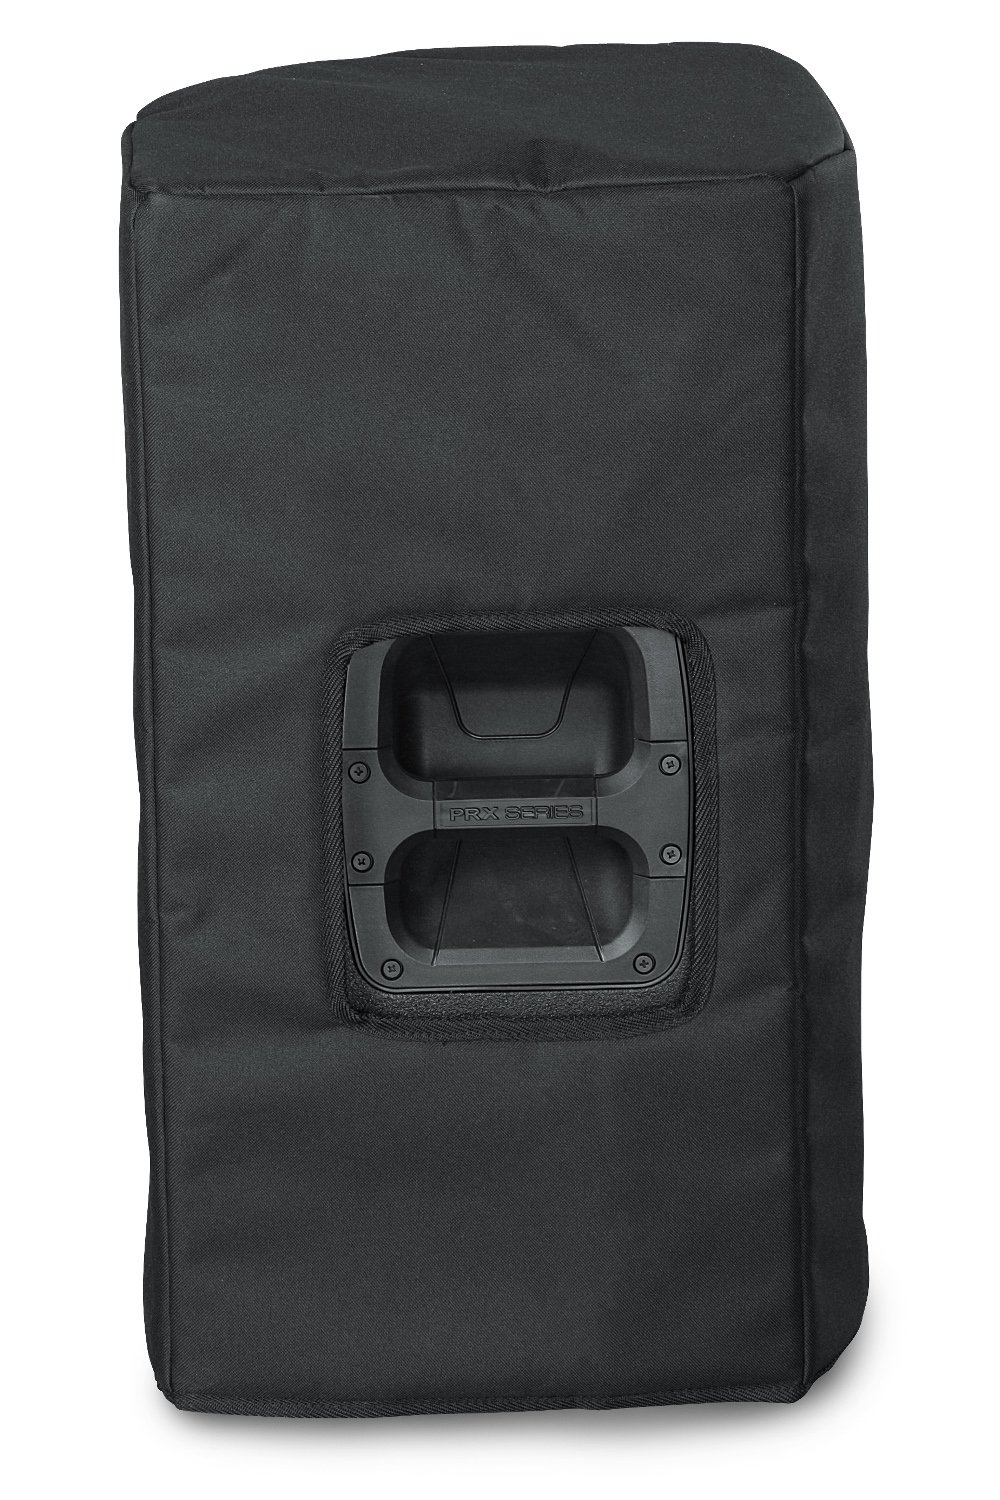 Deluxe Padded Cover for PRX812W